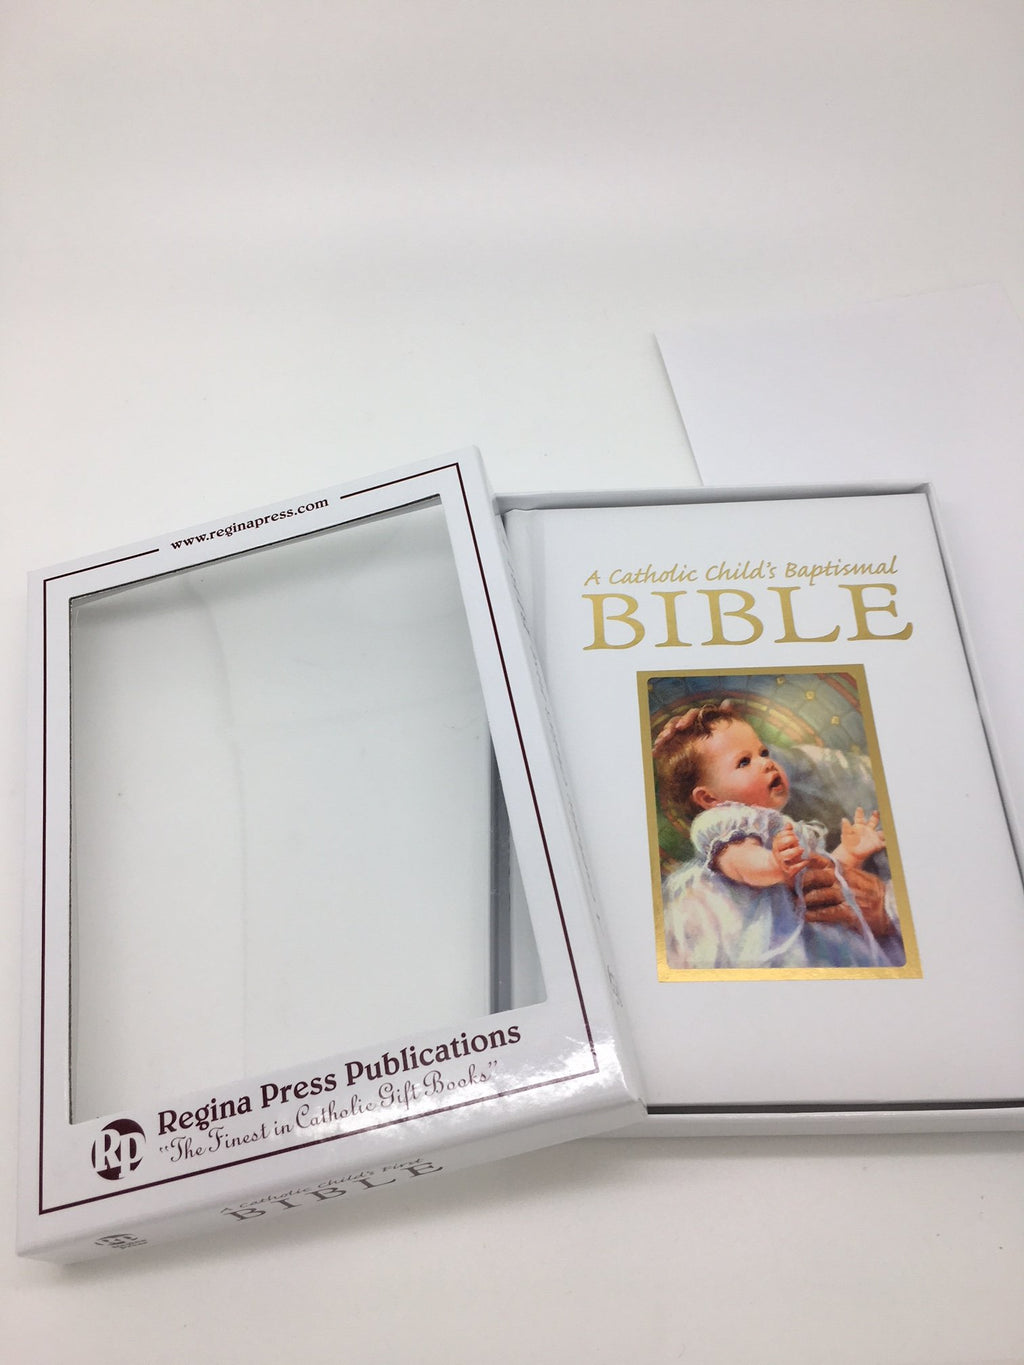 A Catholic Child's Baptismal Bible (child on front)